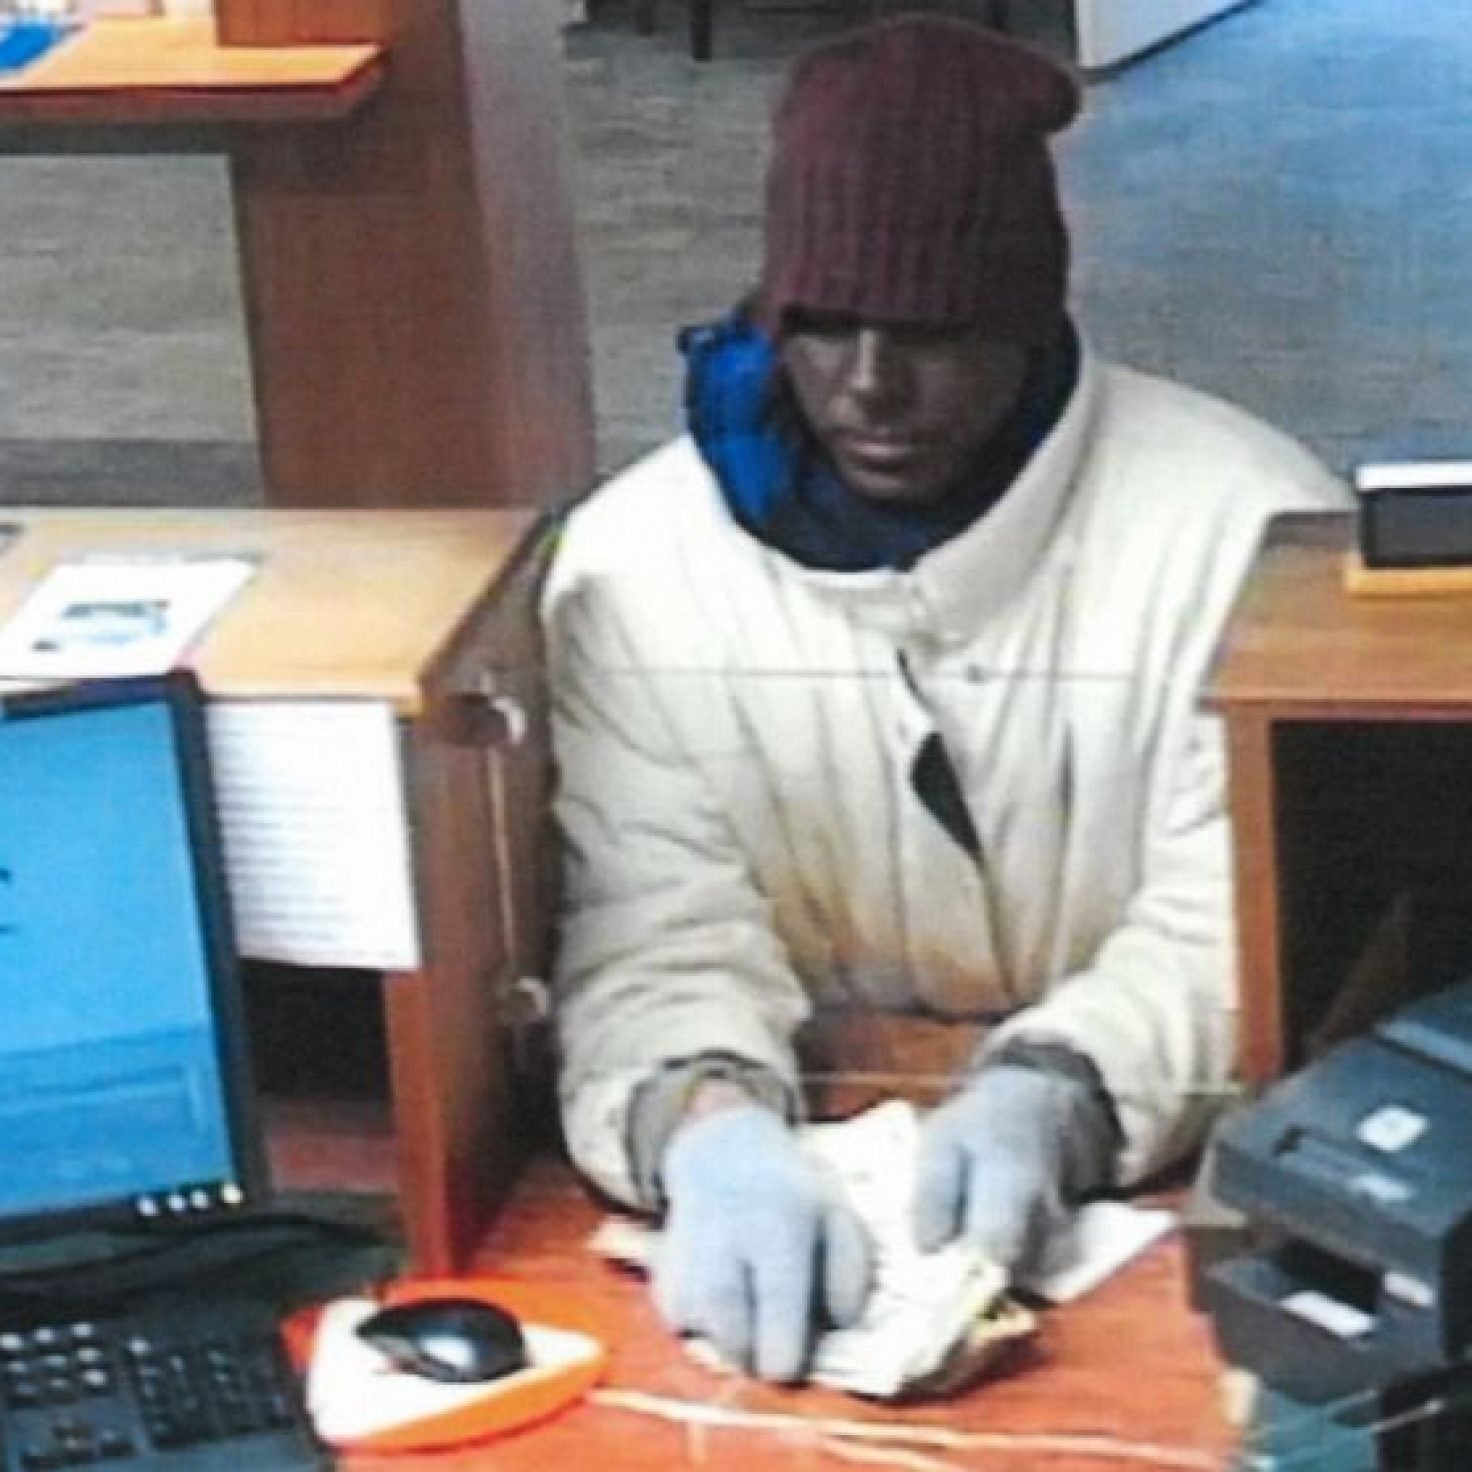 Police Searching For White Man Who Robbed Maryland Bank Wearing Blackface